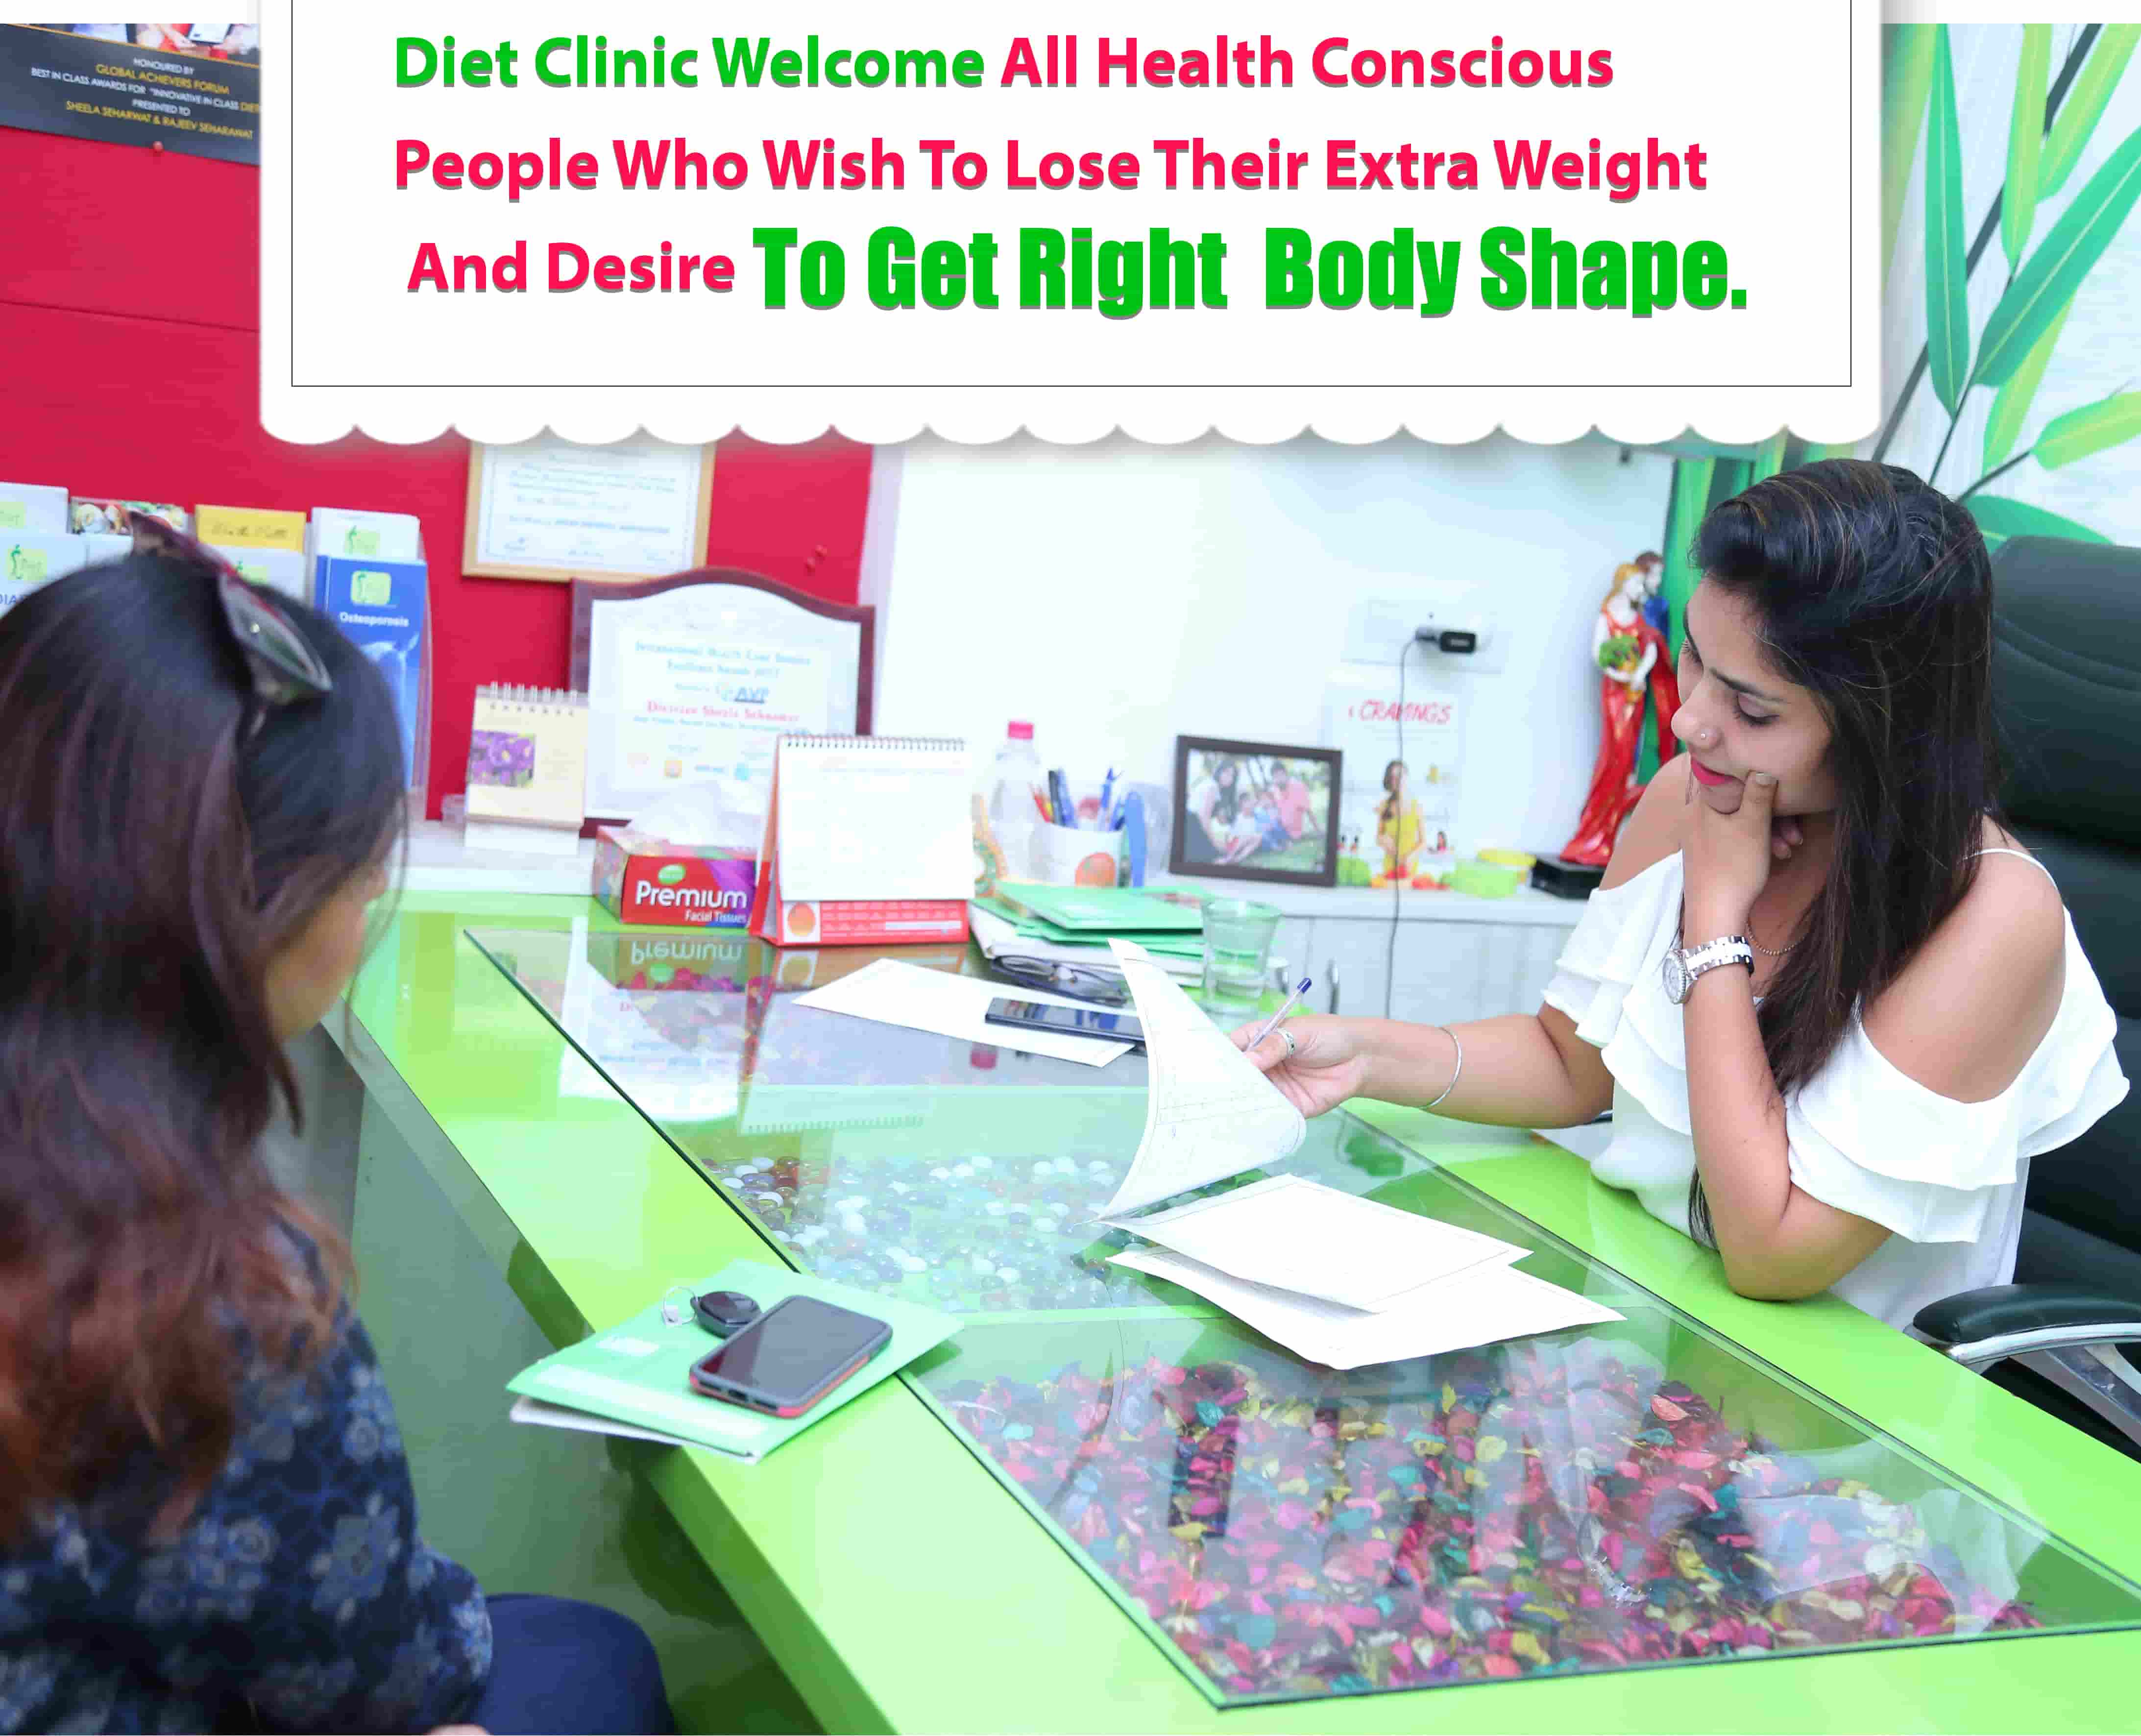 WHY DIET CLINIC?